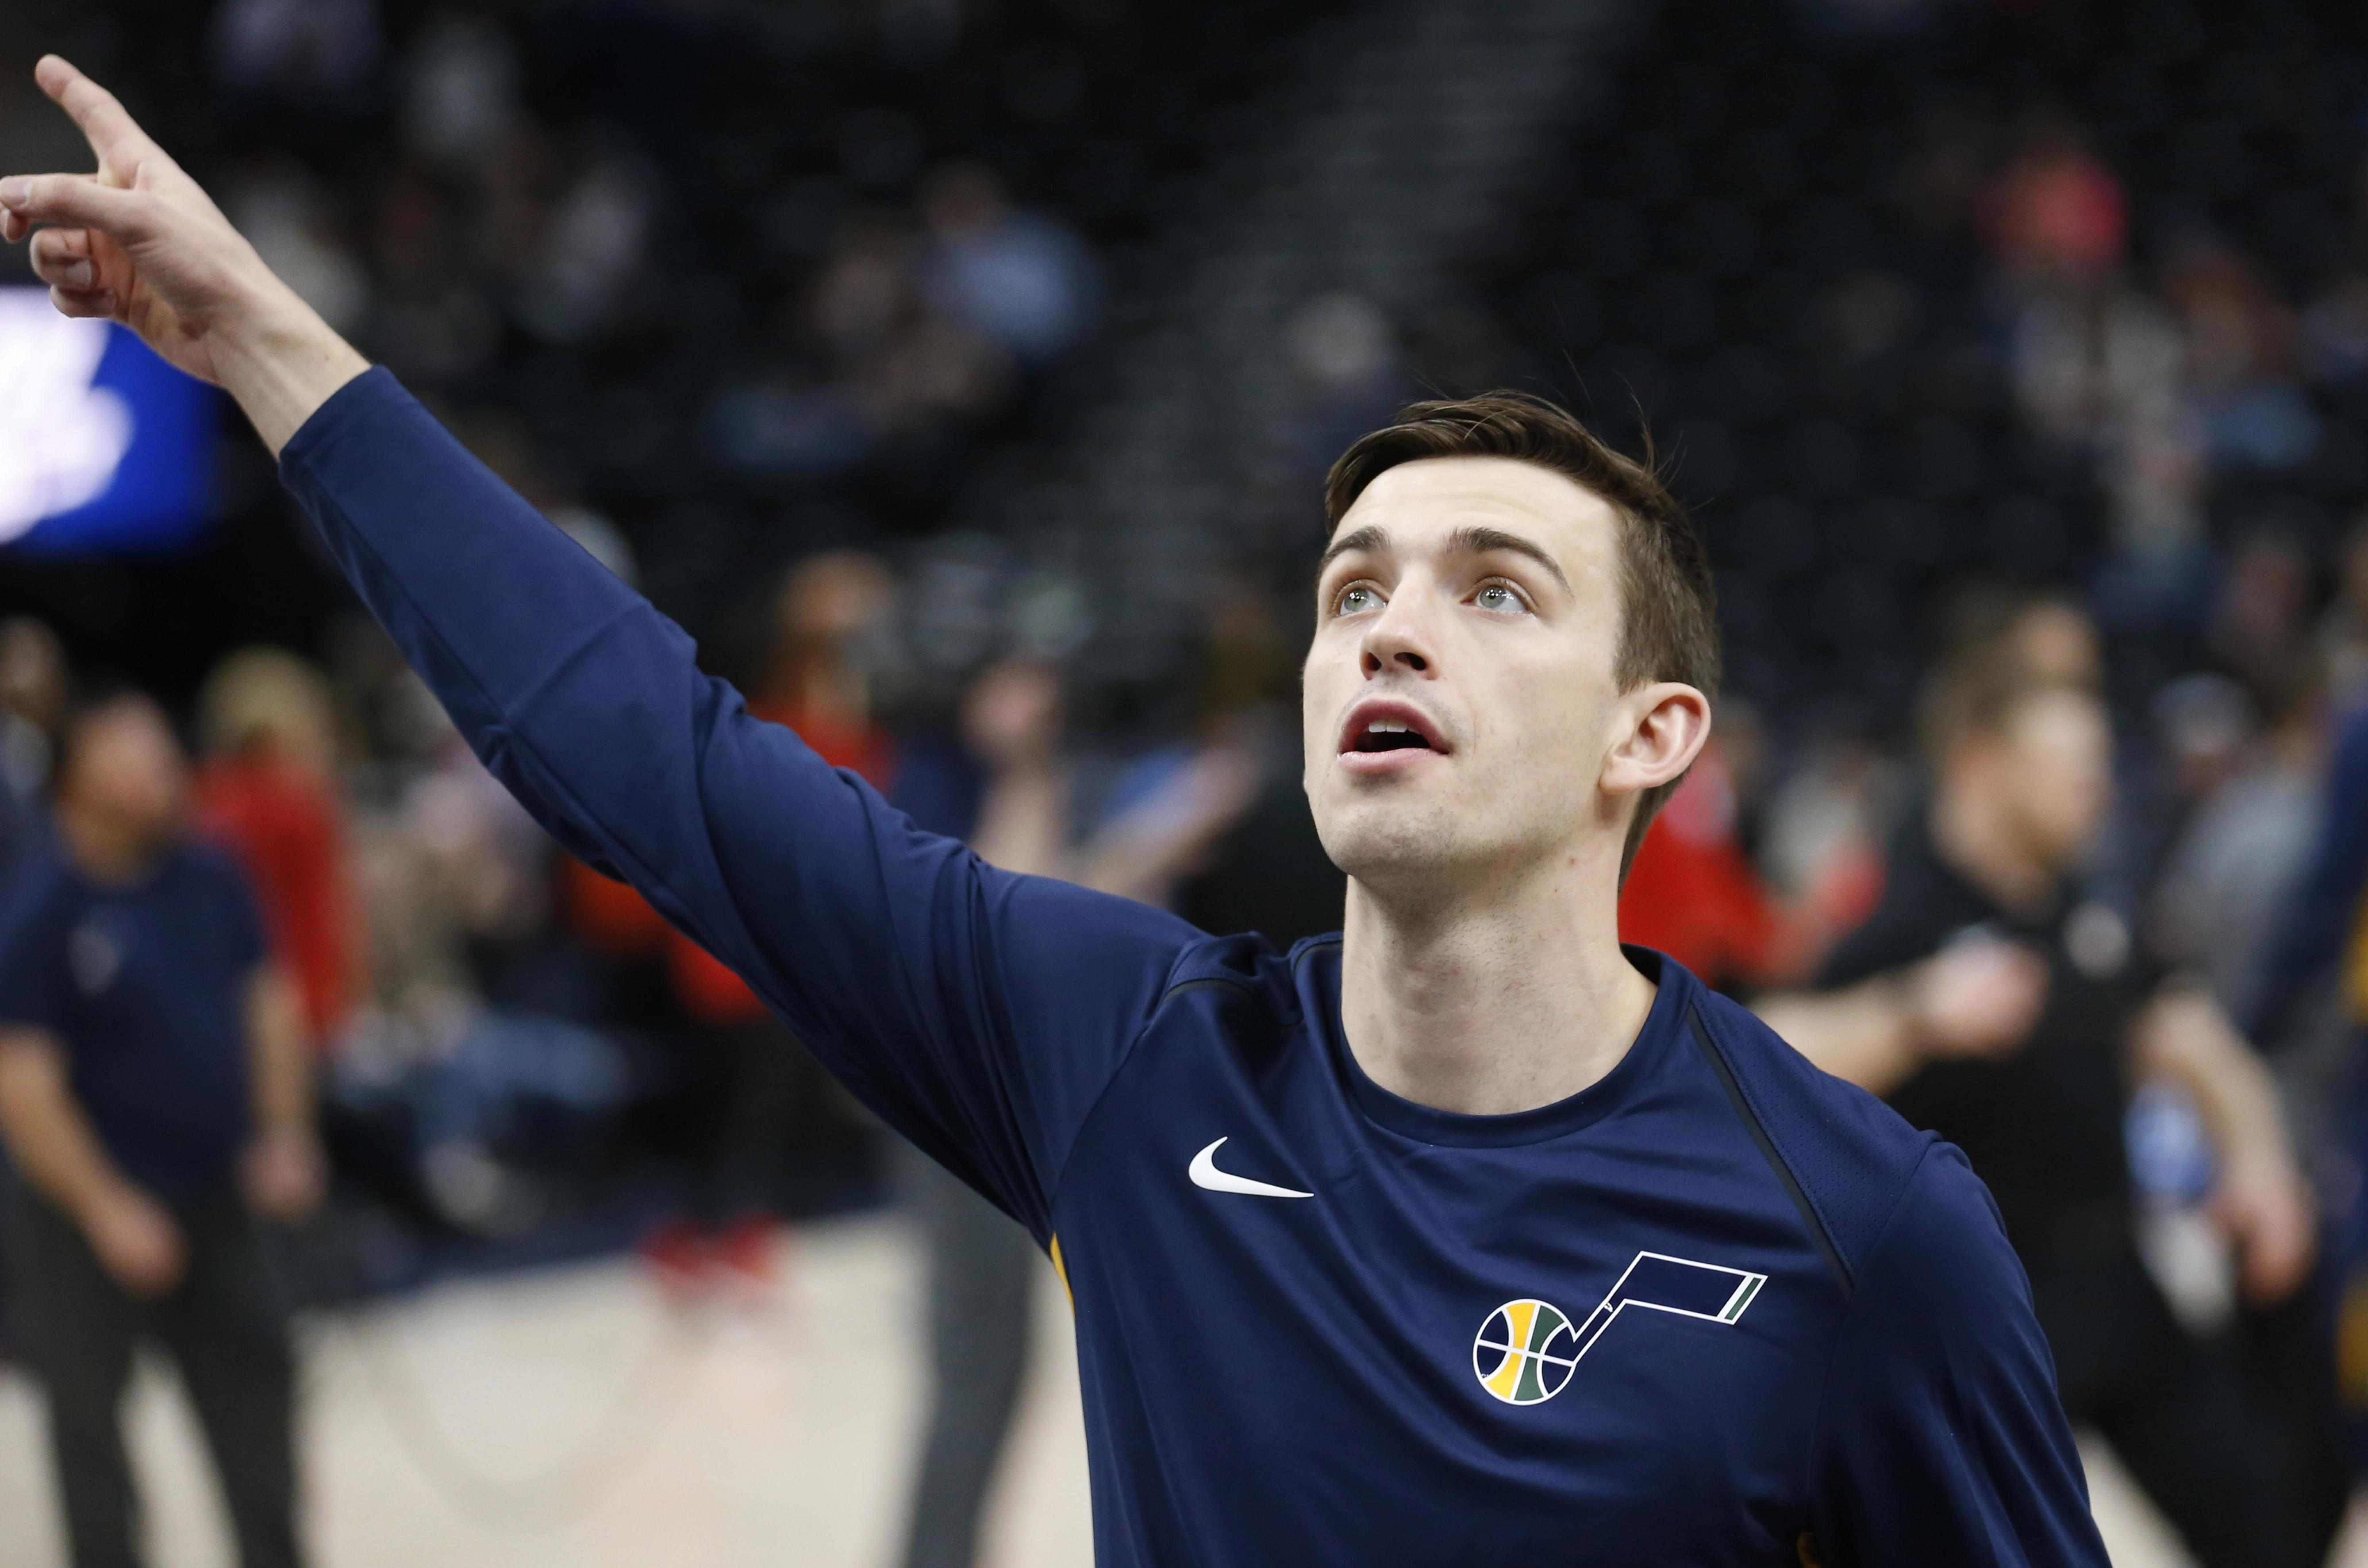 63ec12a4ef Utah Jazz guard David Stockton looks on during practice before the start of  Tuesday's game against